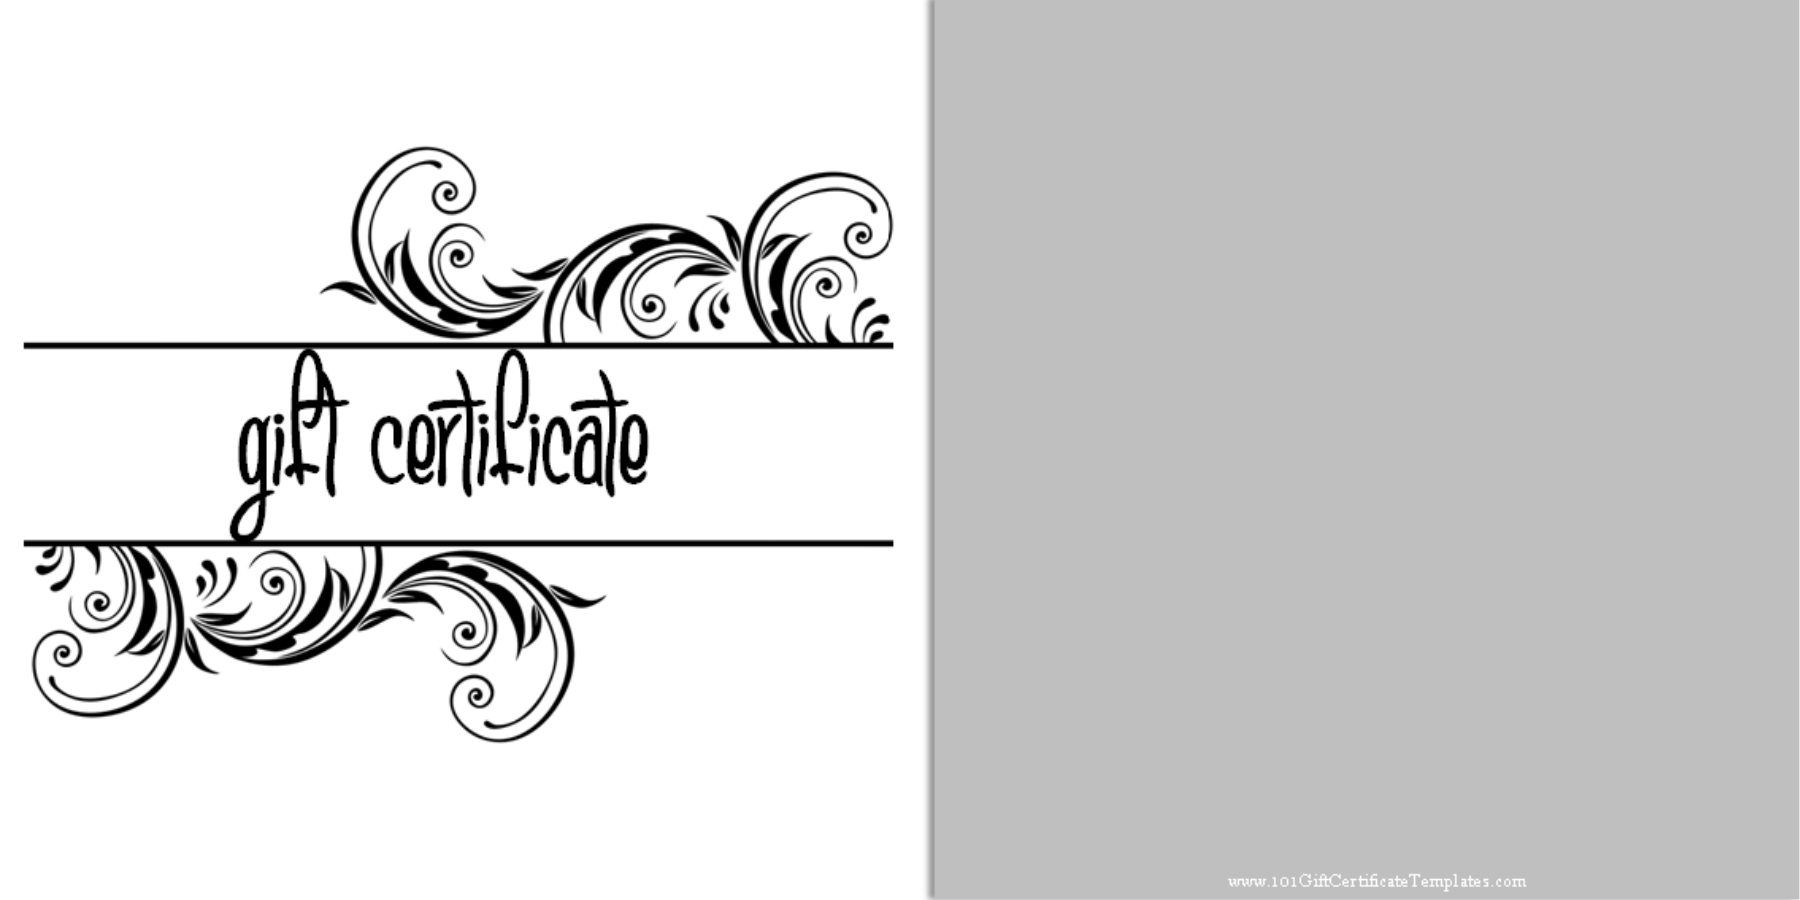 Free Printablegift Certificate Templates Which Can Be Customized